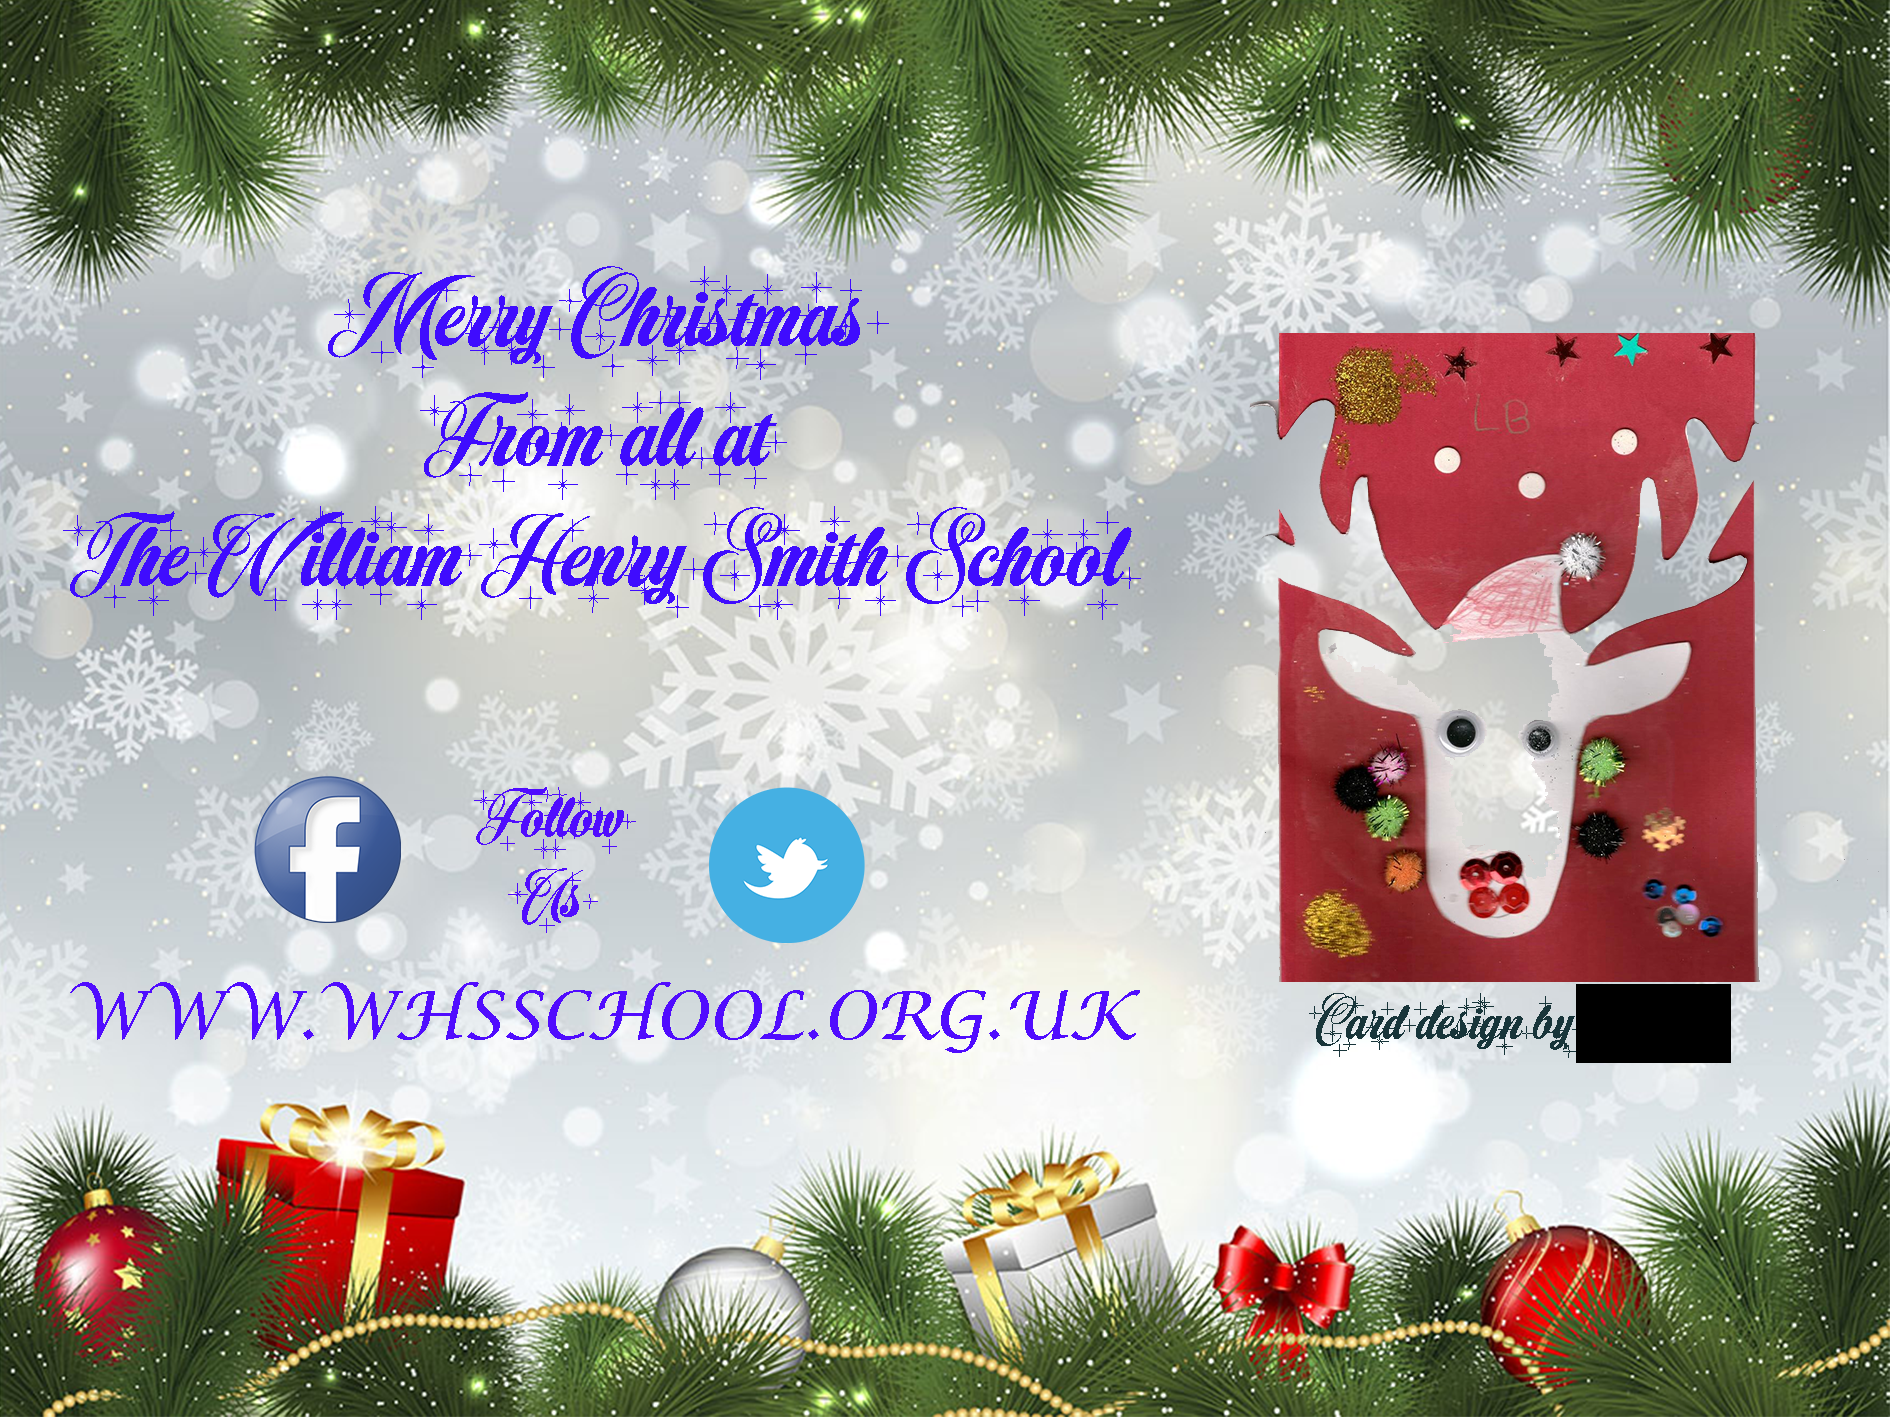 Christmas E-Card Winner